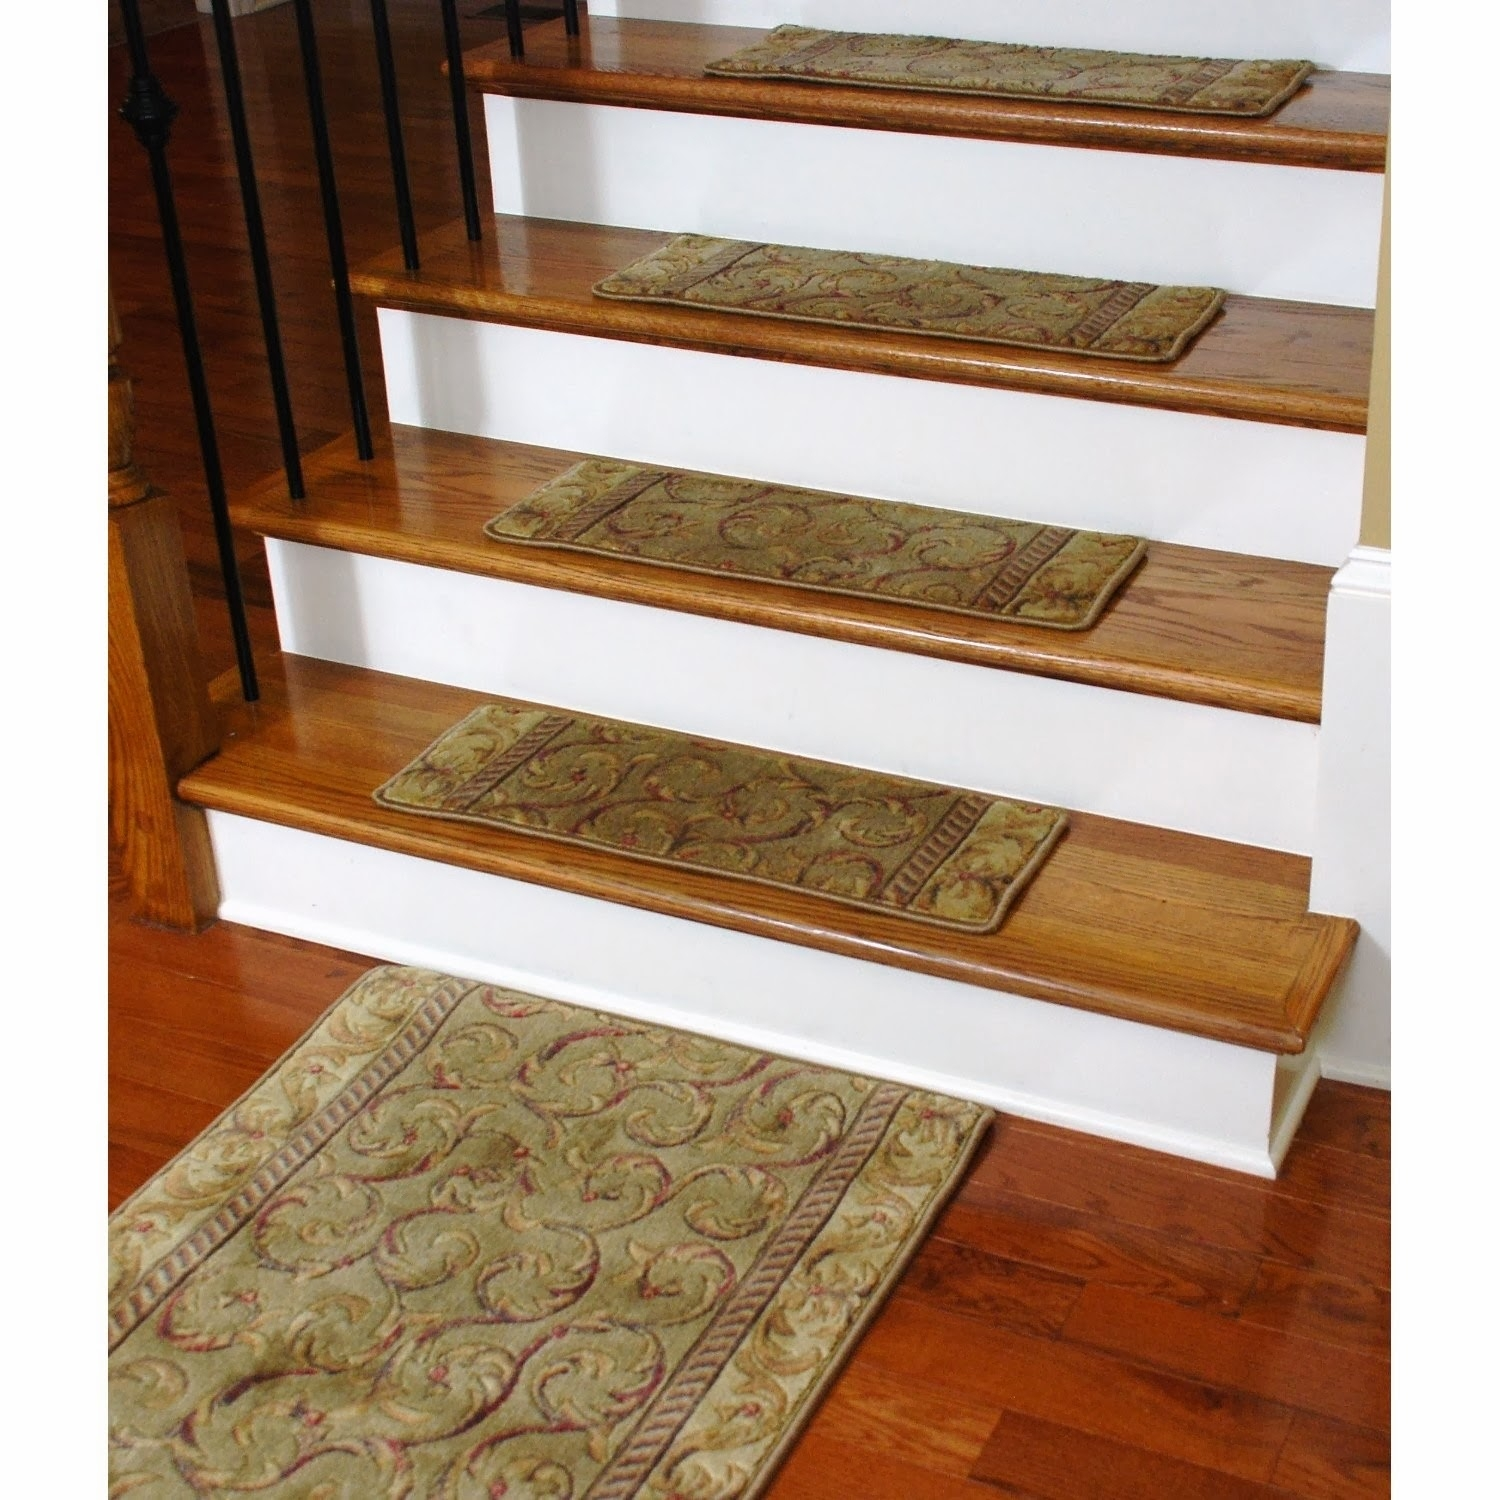 Excellent Carpet Stair Treads With Rug Carpet Stairs Treads And For Carpet Treads For Stairs (Image 6 of 15)